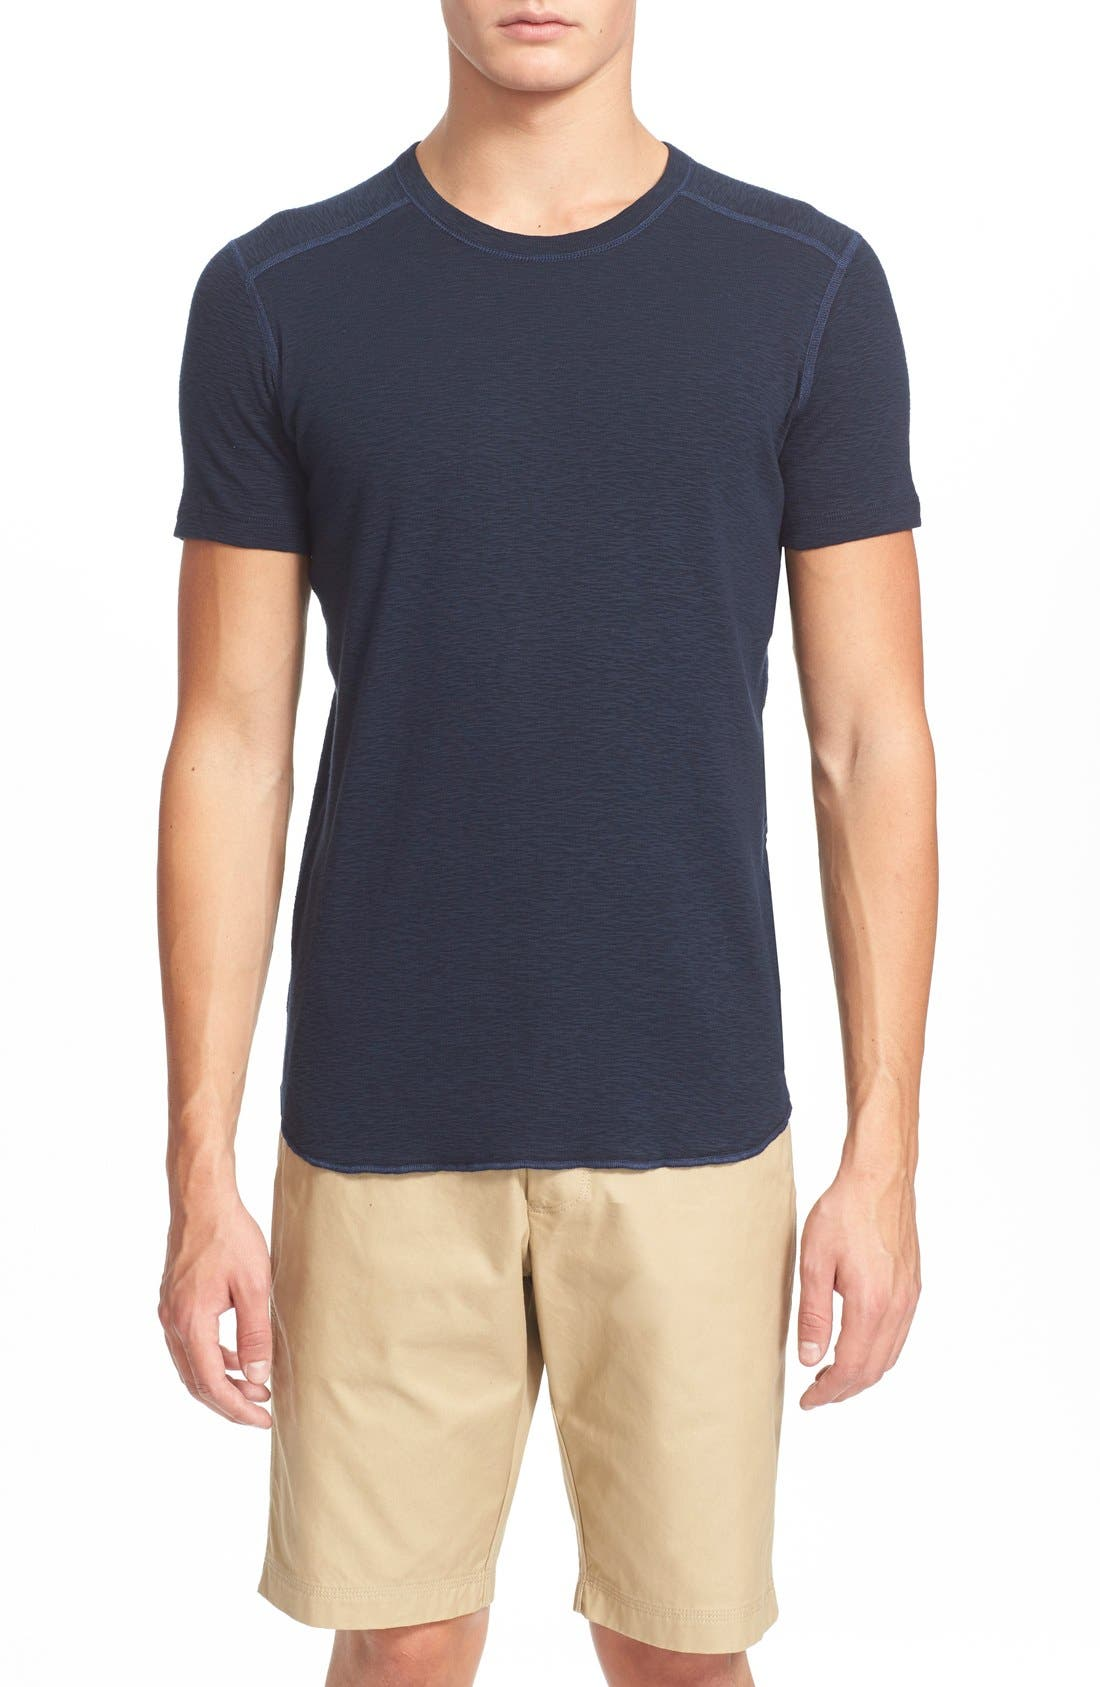 WINGS + HORNS Ribbed Slub Cotton T-Shirt in Navy